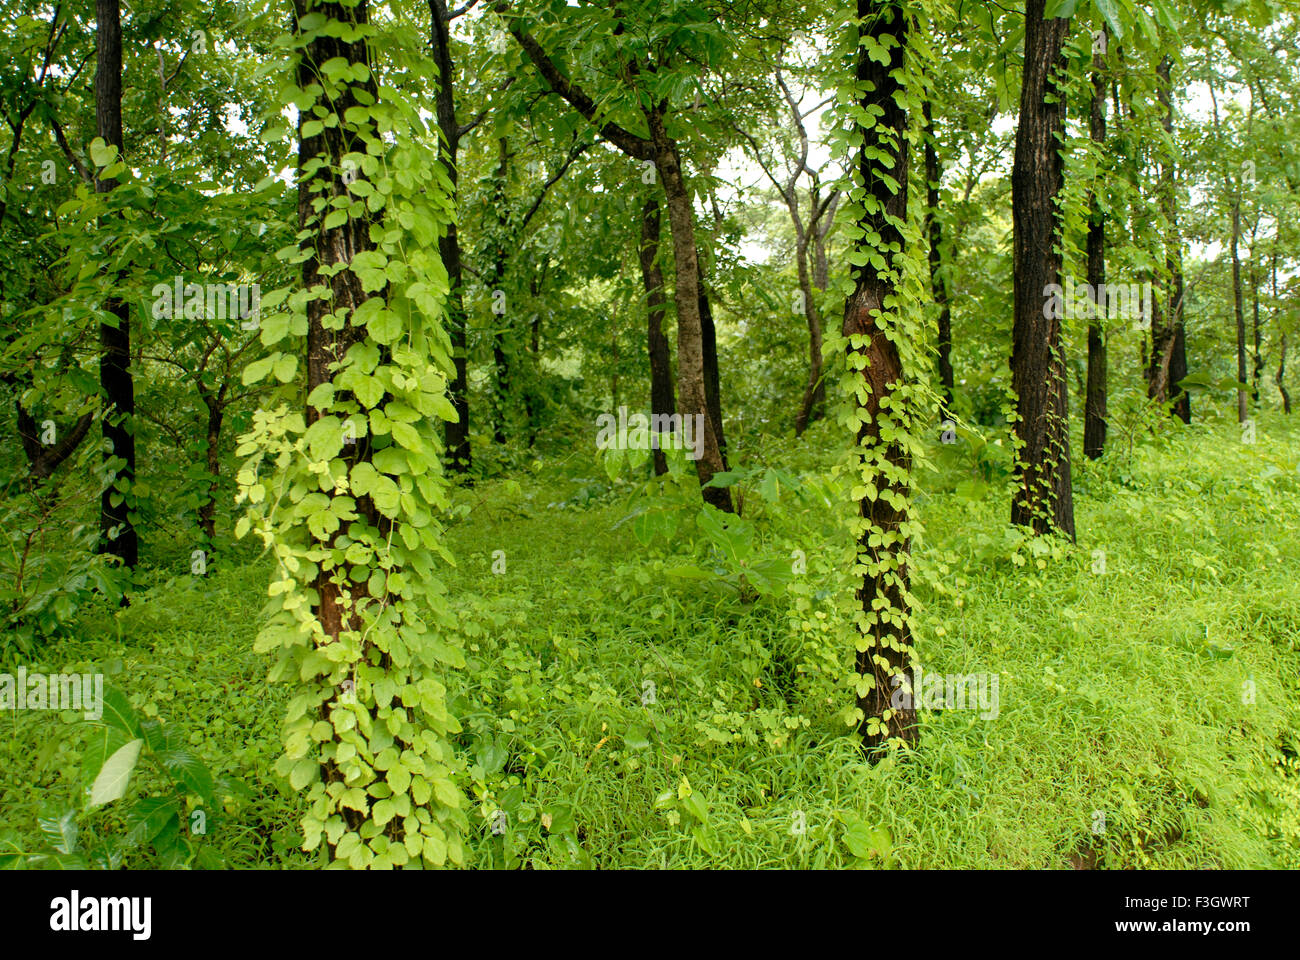 in monsoon climbing plants climb on tree trunks in the forest asangaon road district thane maharashtra india - Climbing Plants